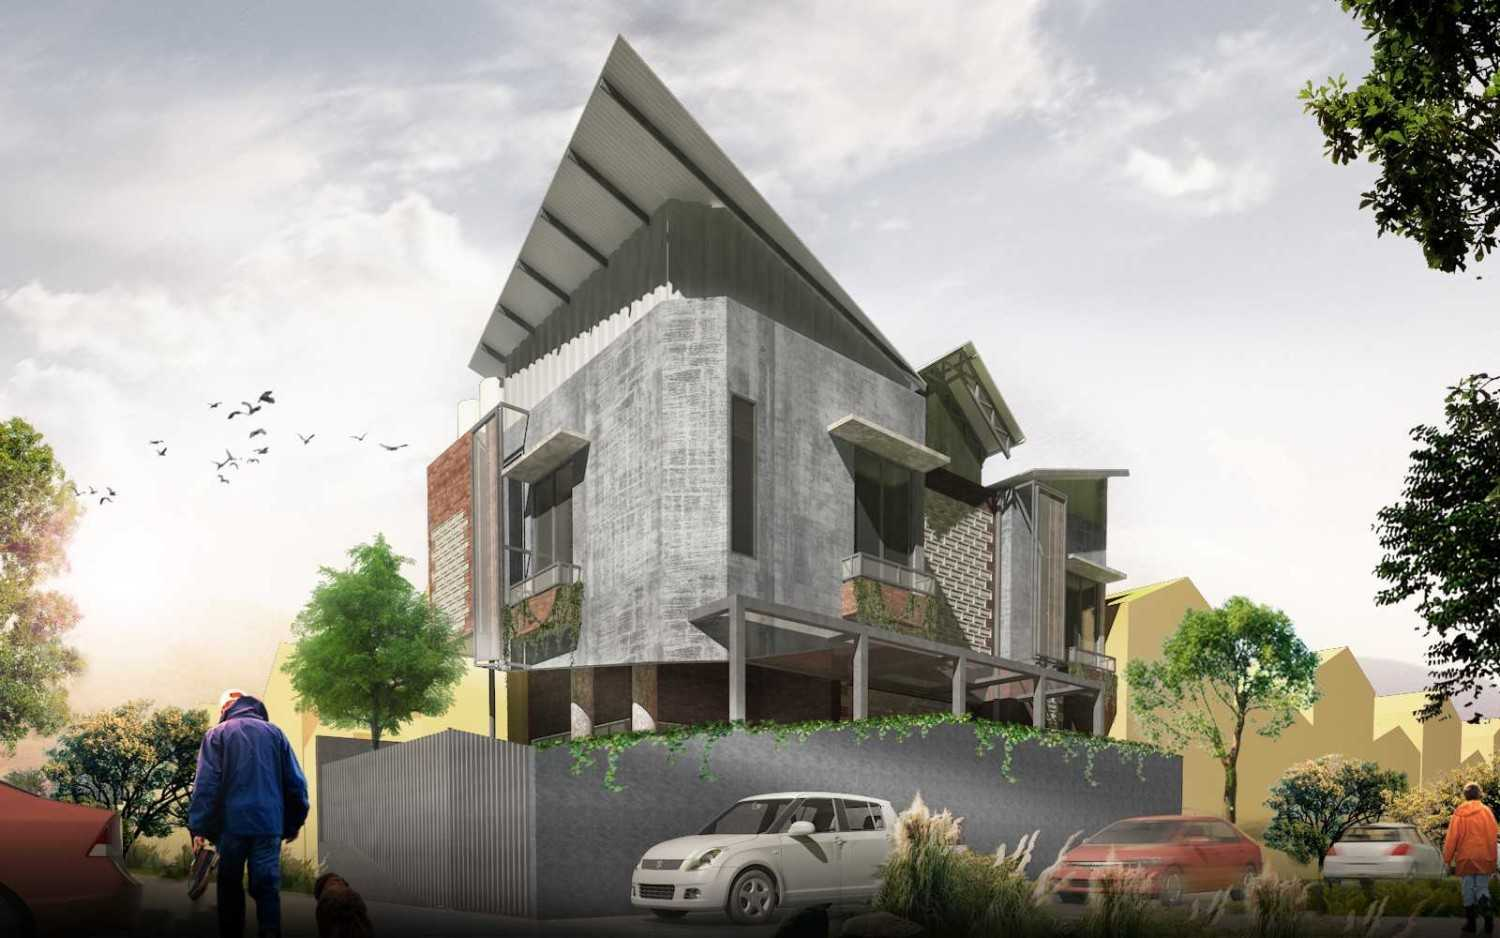 Jasa Design and Build studioindoNEOsia di Boyolali